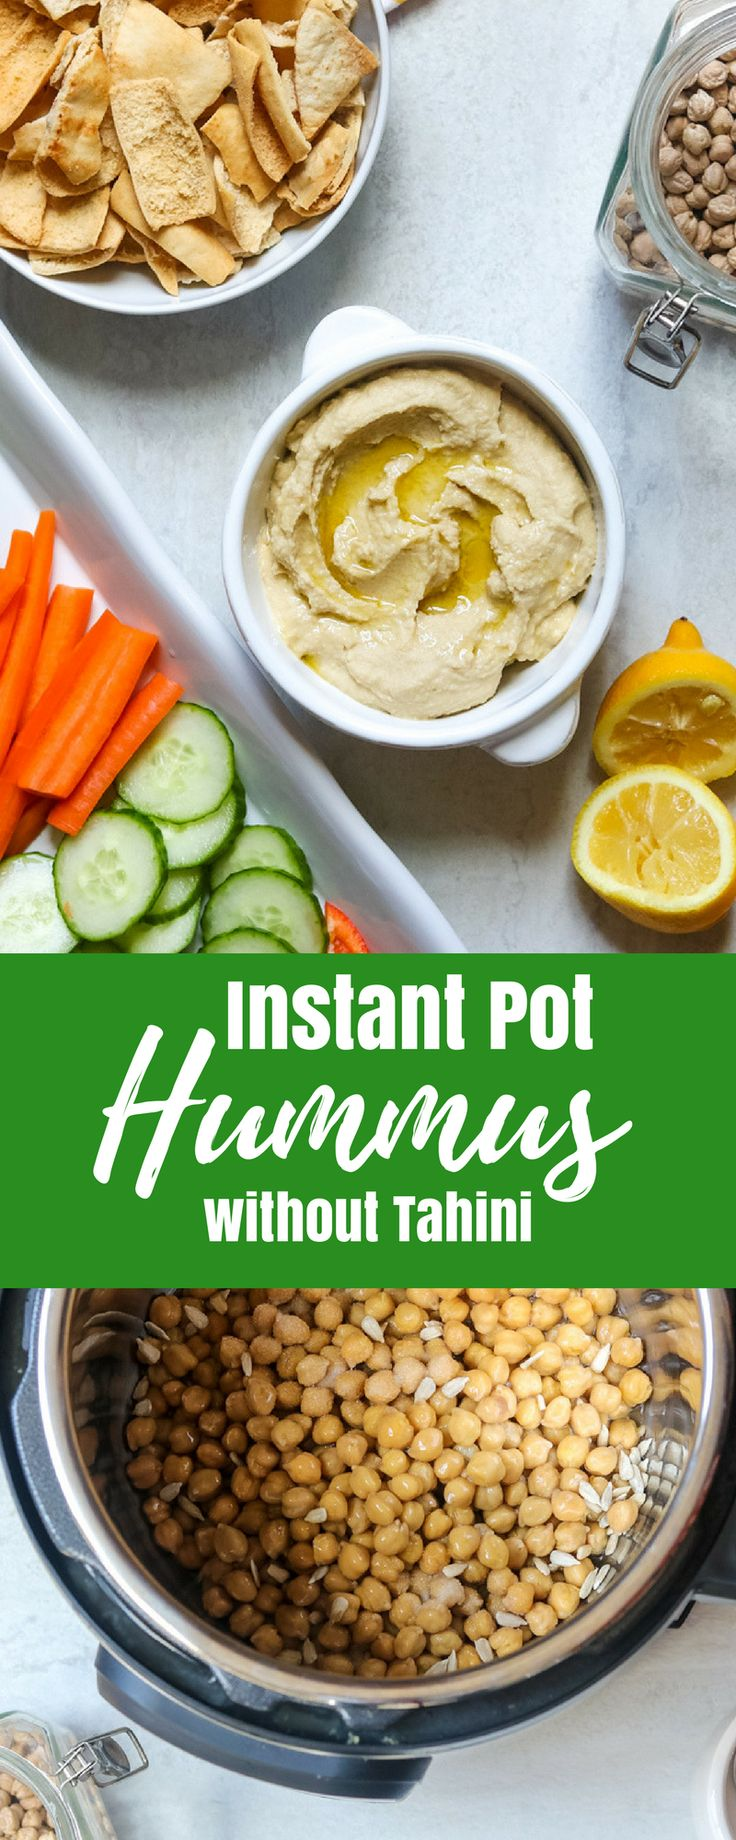 Instant Pot Hummus--This easy recipe for pressure cooker hummus is going to BLOW your mind! Made with dried chick-peas and wait for it-----sunflower seeds, this hummus recipe without tahini is going to become your new FAVORITE hummus recipe. You won't believe how easy restaurant quality hummus is to make at home.#amindfullmom #hummus #instantpot #pressurecooker via @amindfullmom